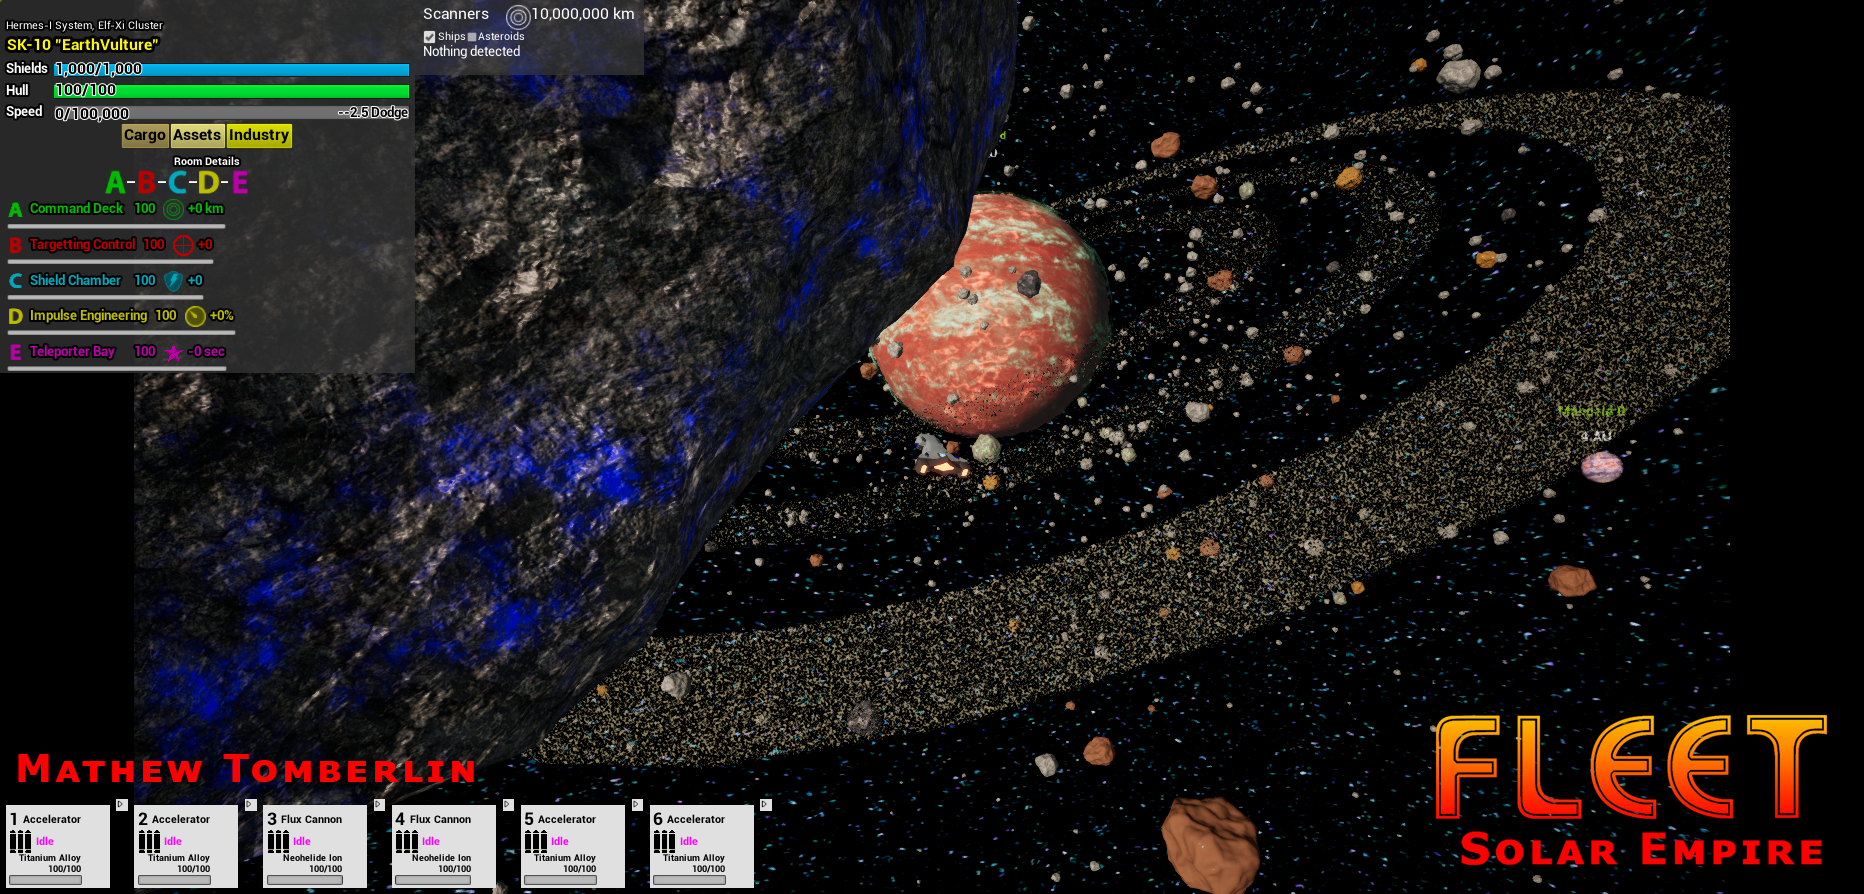 Star Knight near a C-Type asteroid orbitting a planet